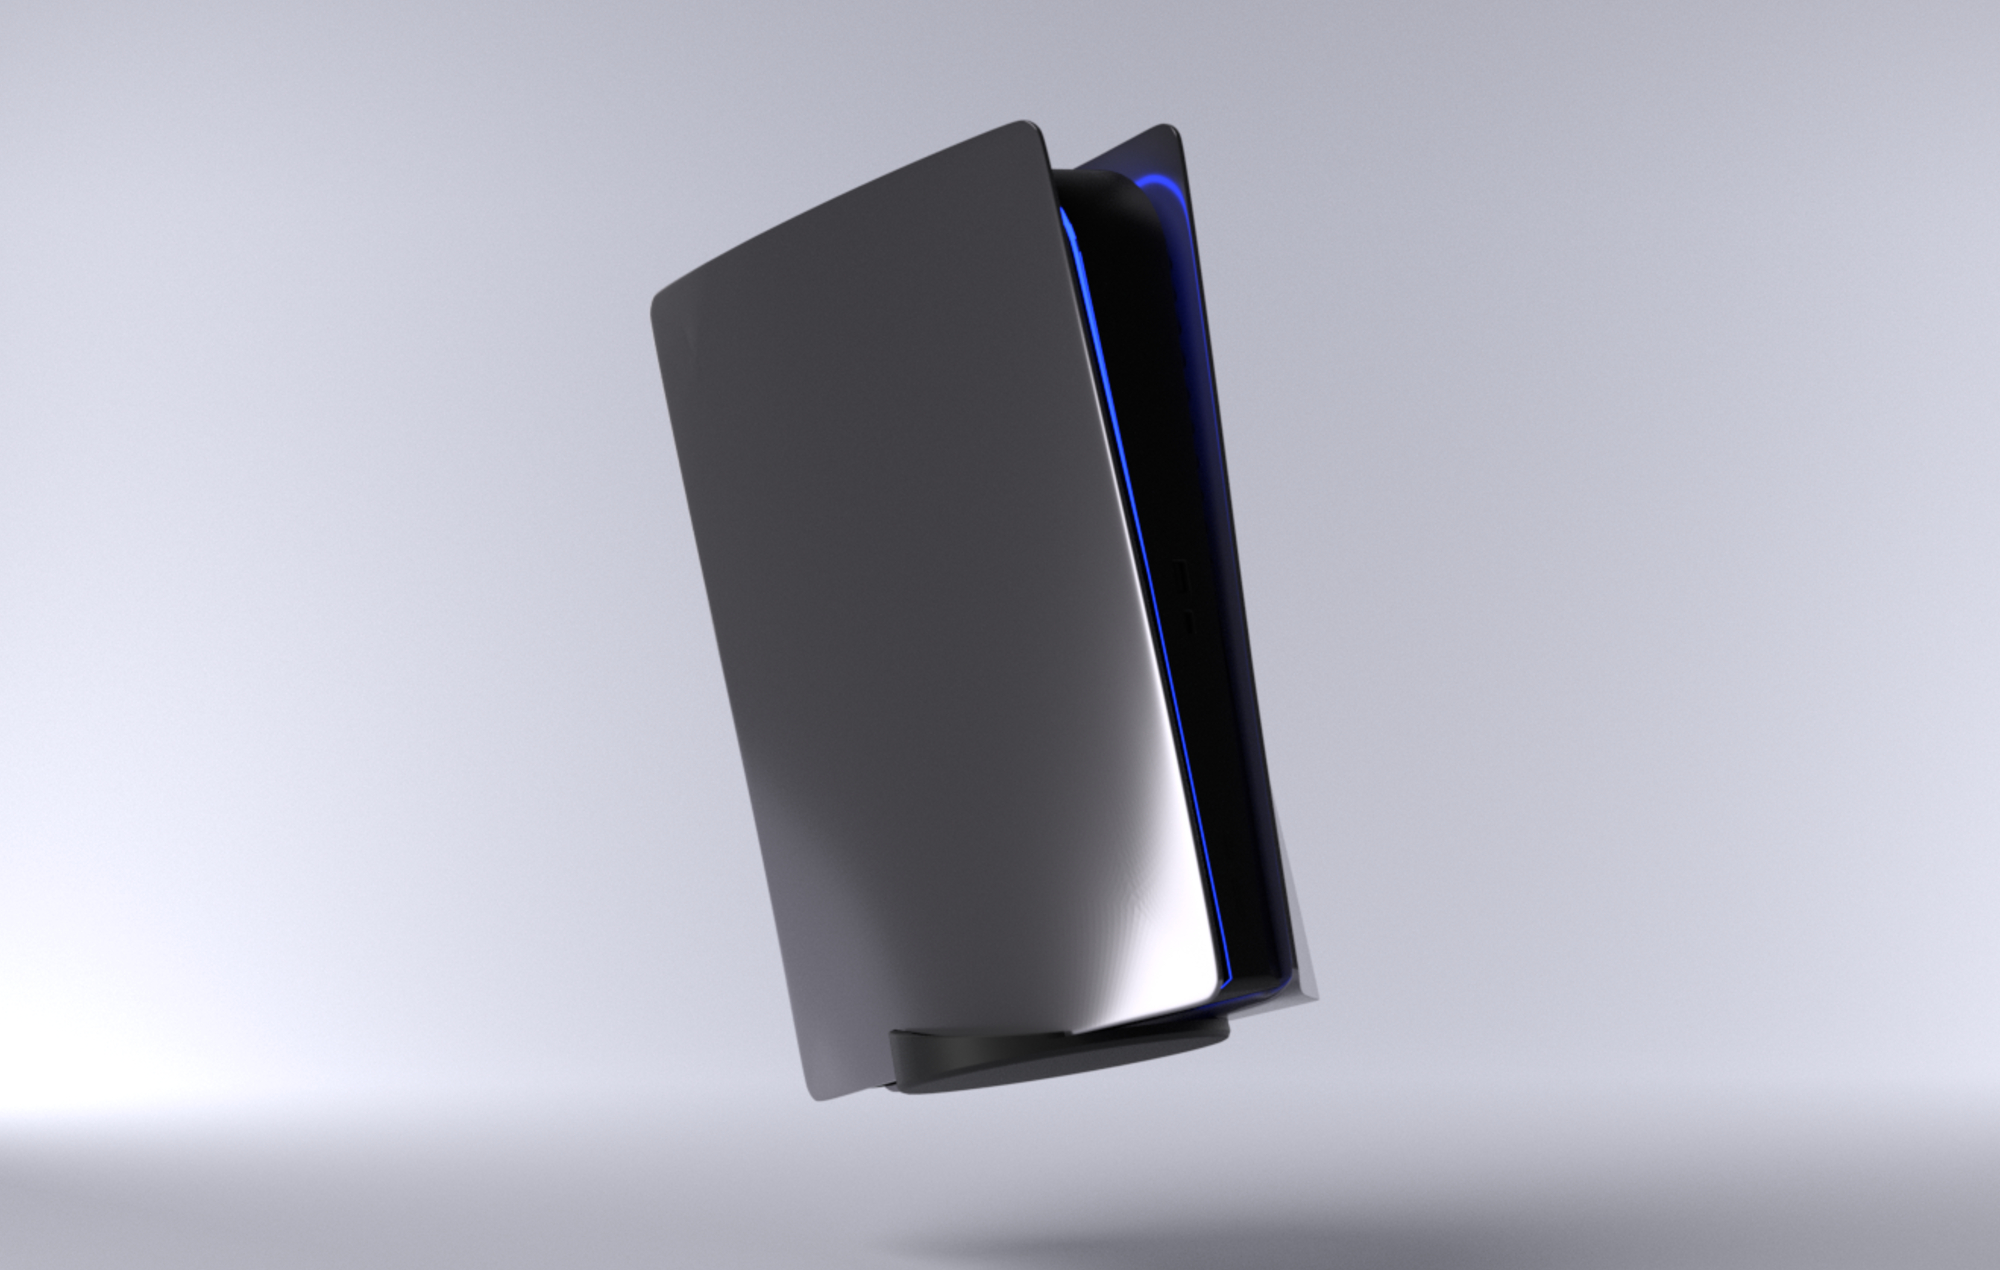 PS5 faceplate